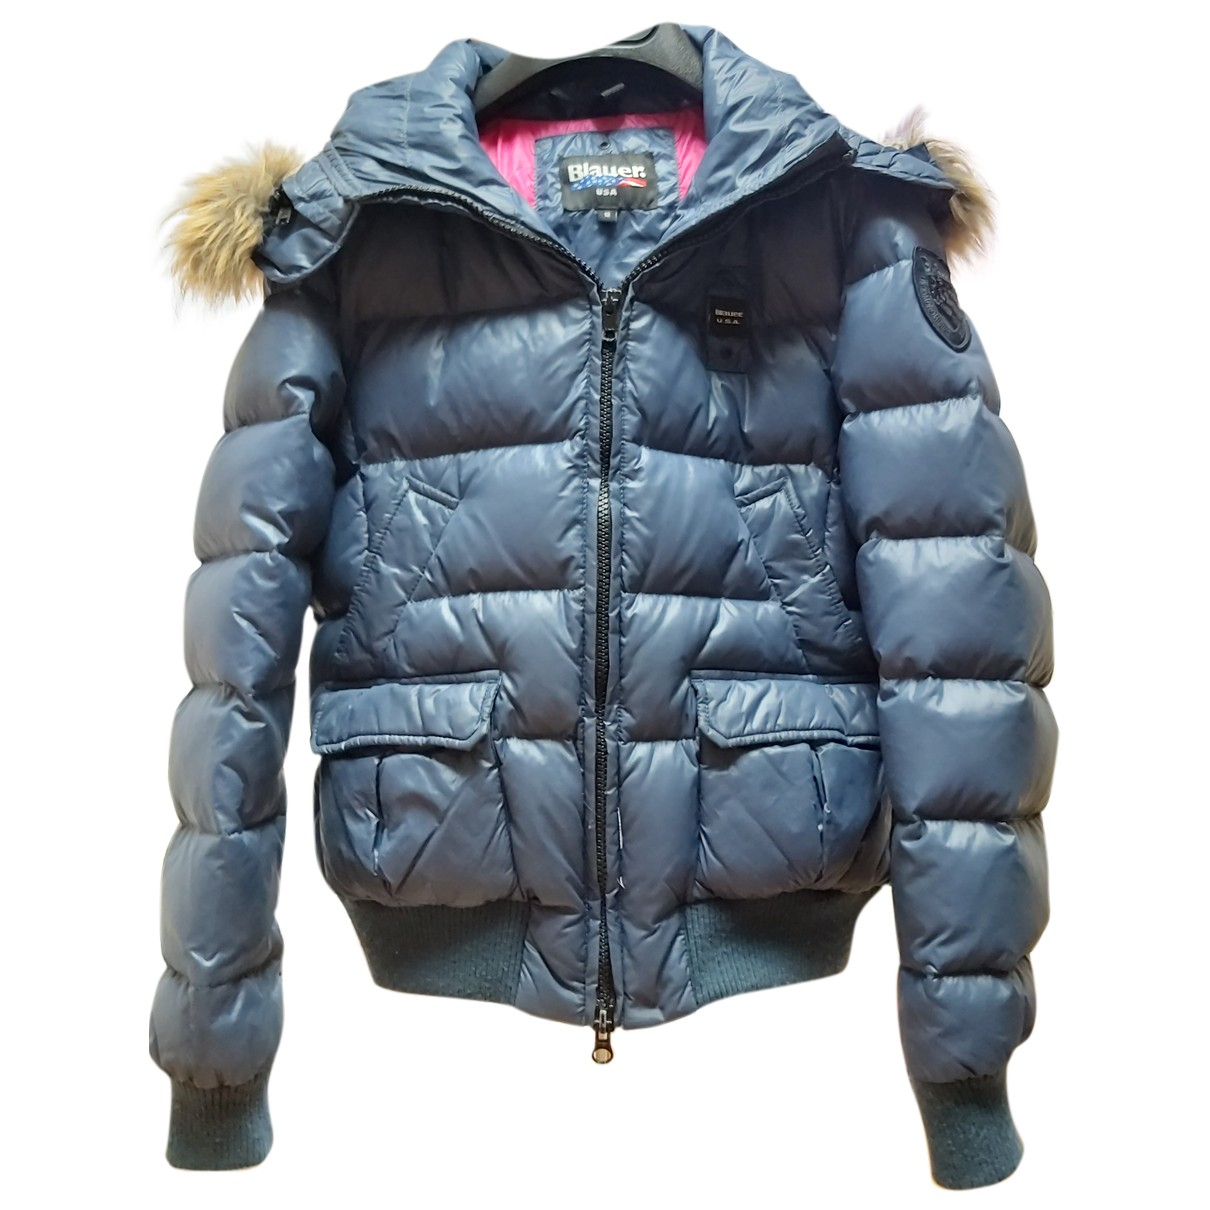 Blauer N Blue jacket & coat for Kids 12 years - XS UK